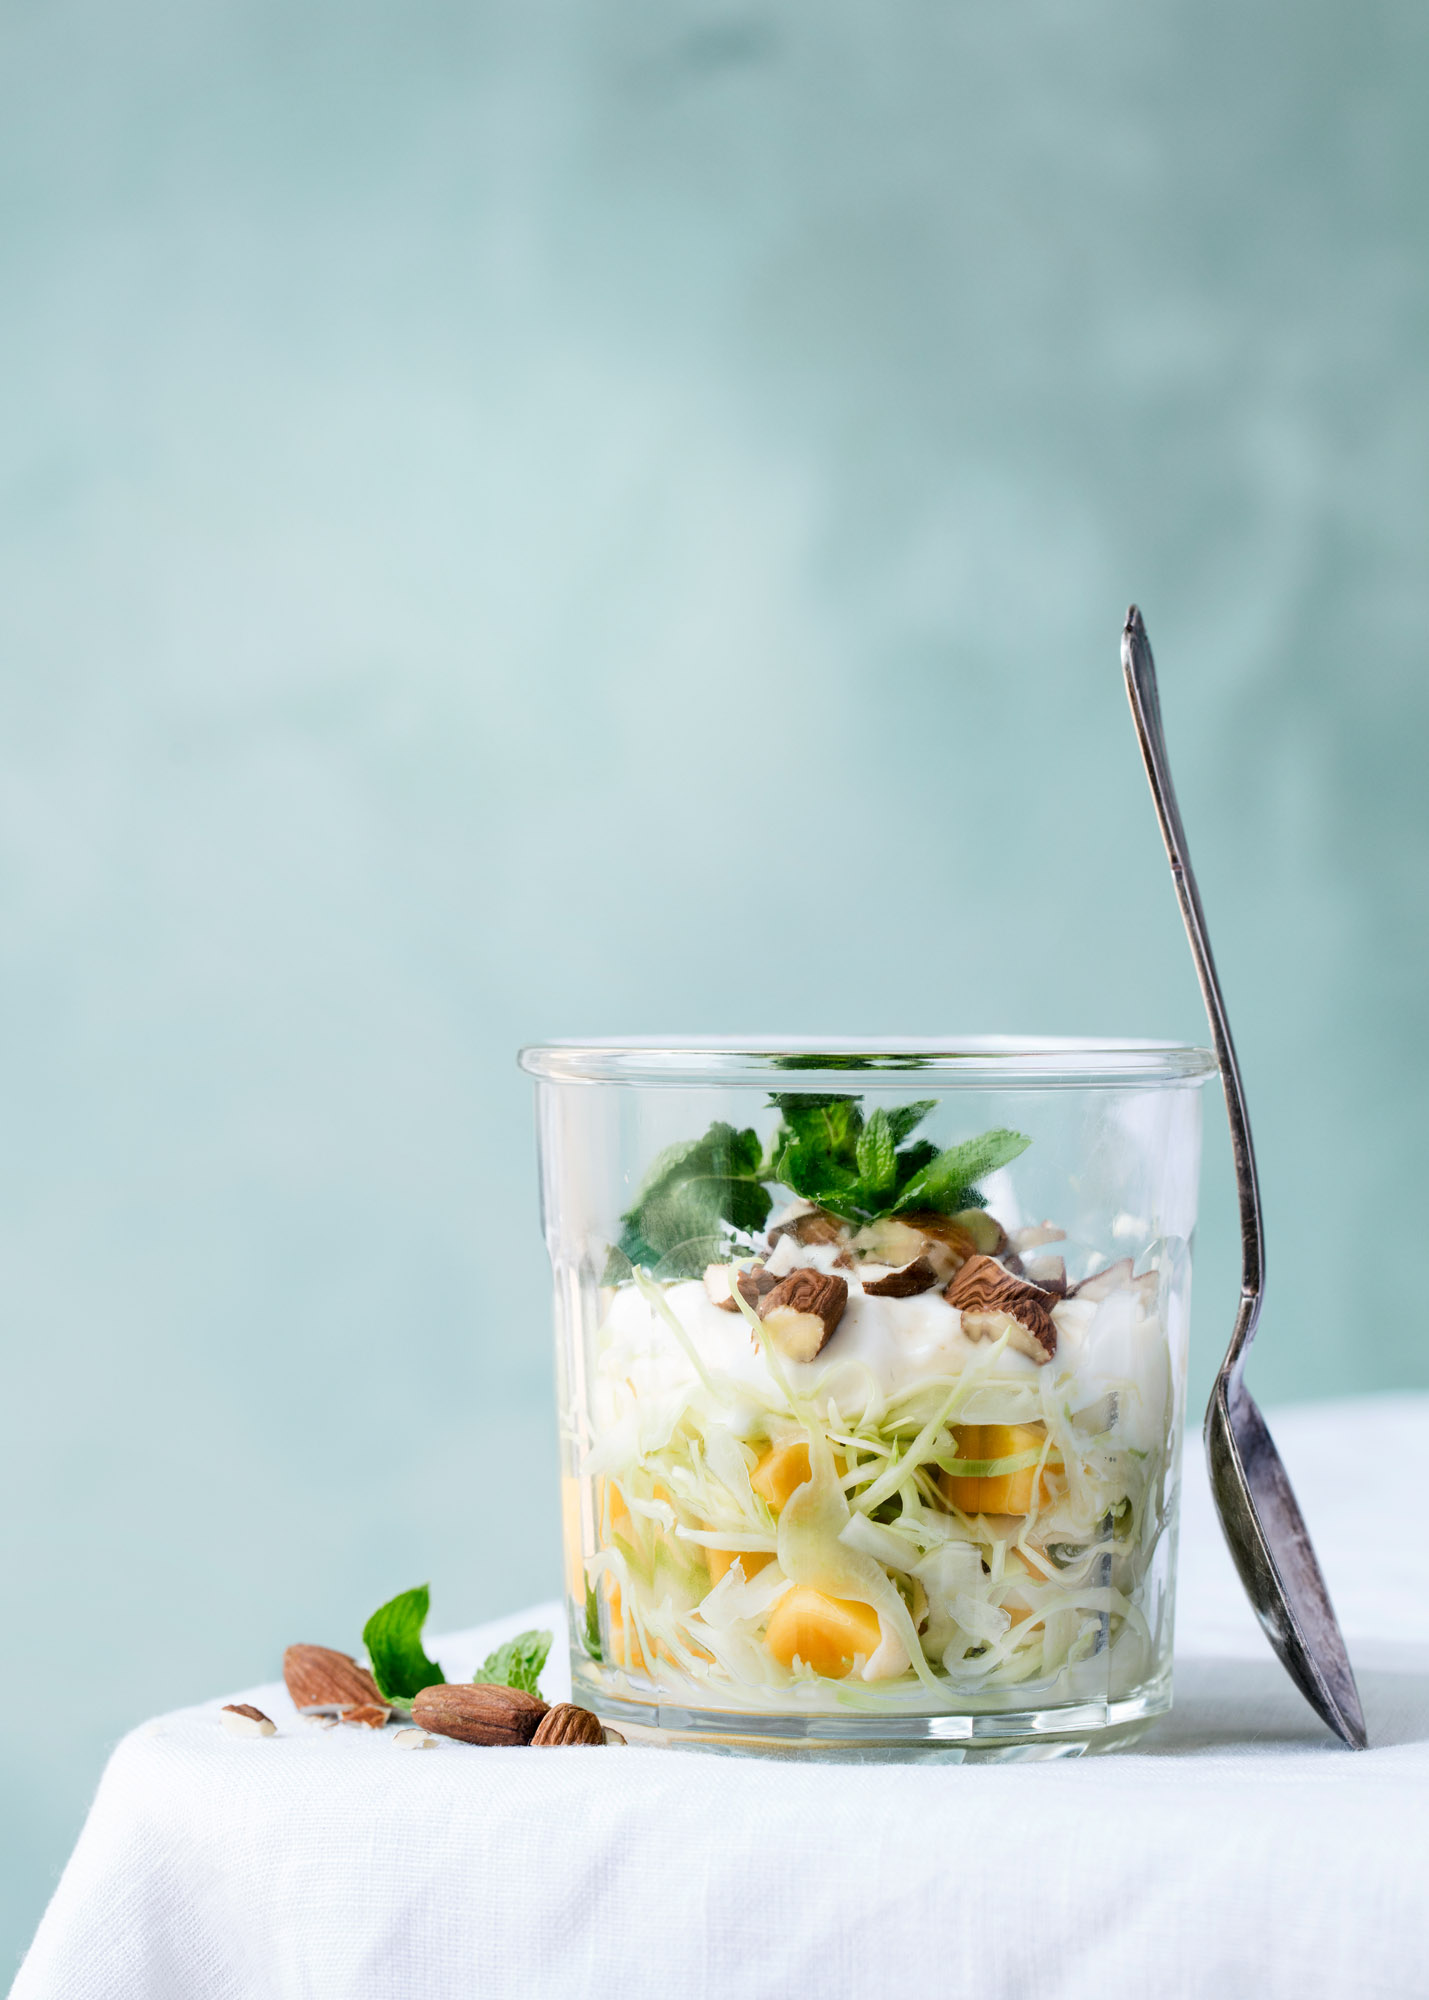 Cabbage with Mango, Skyr, and Almonds